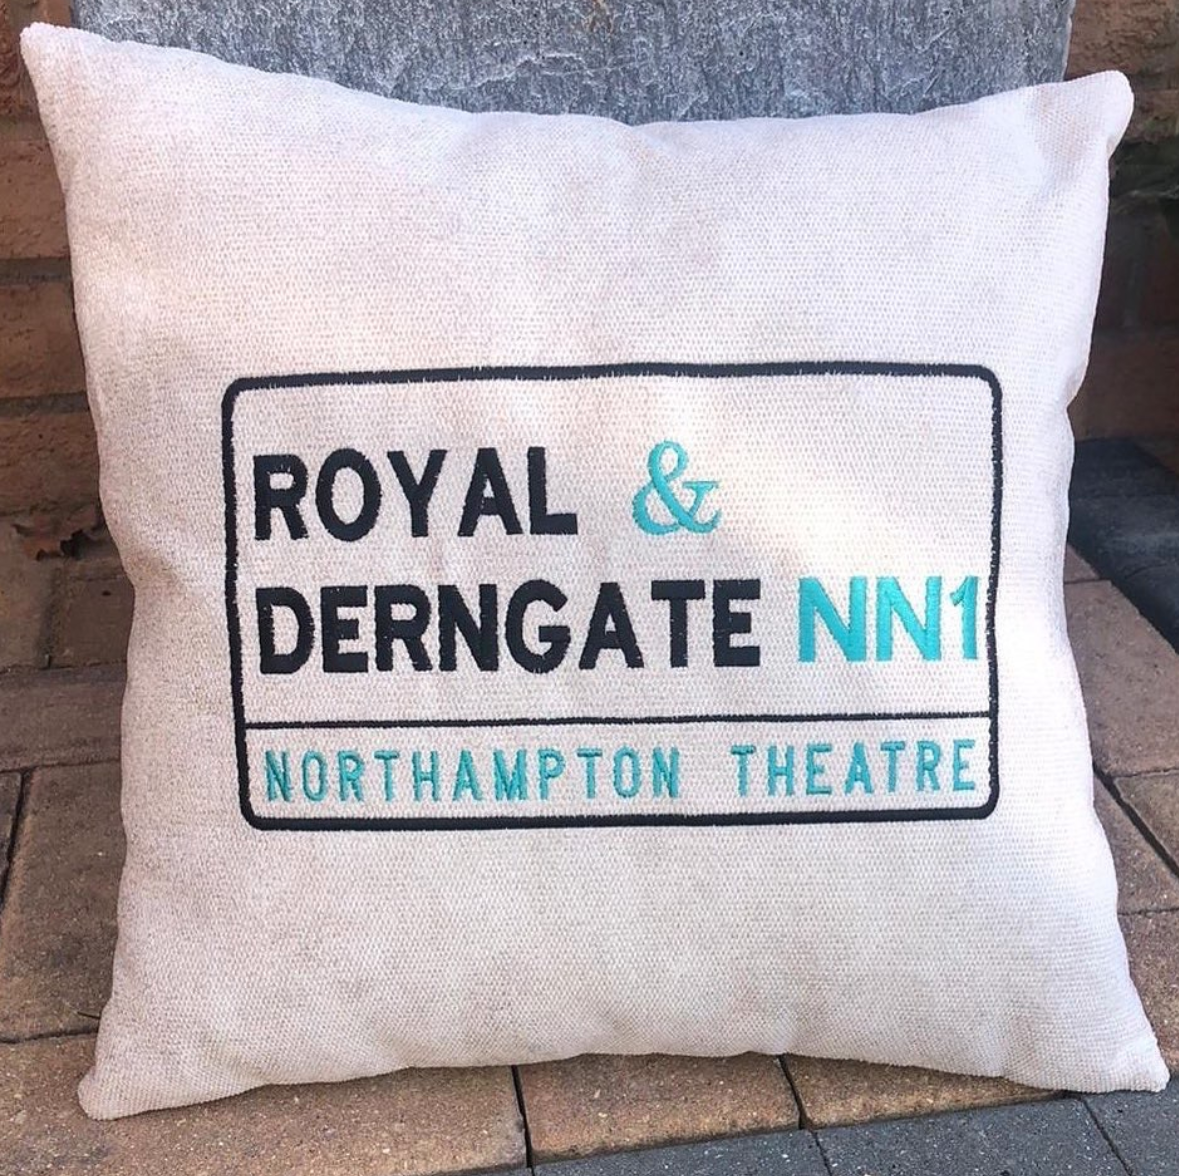 Above: The limited edition cushion the sales of which are raising funds for Northampton's Royal & Derngate theatre.